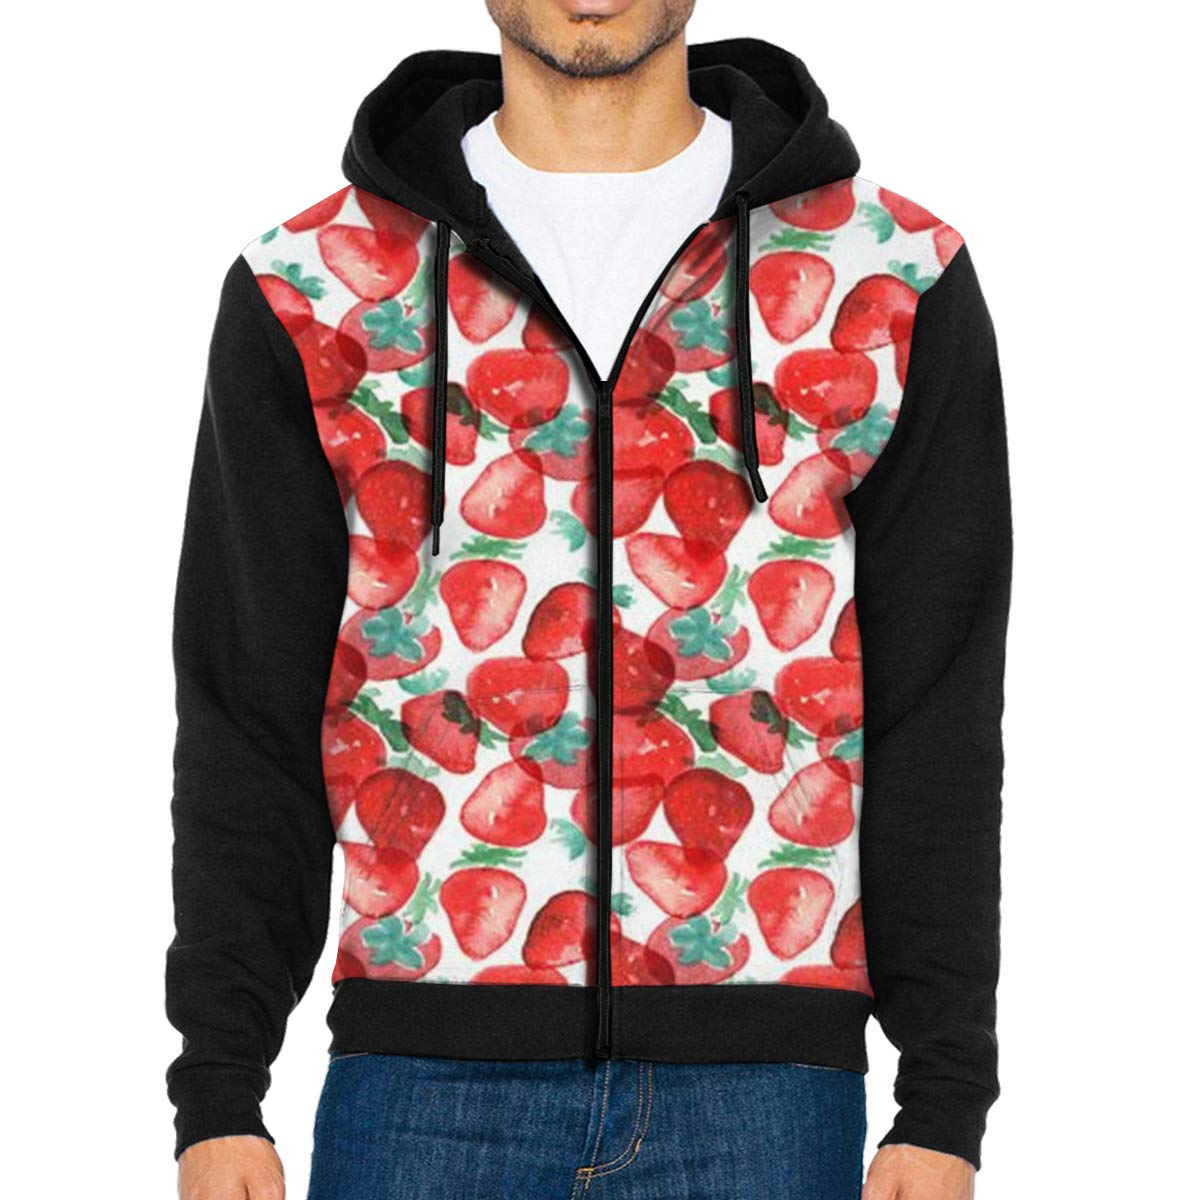 MHBGMYES Strawberry Lightweight Mans Jacket with Hood Long Sleeved Zippered Outwear